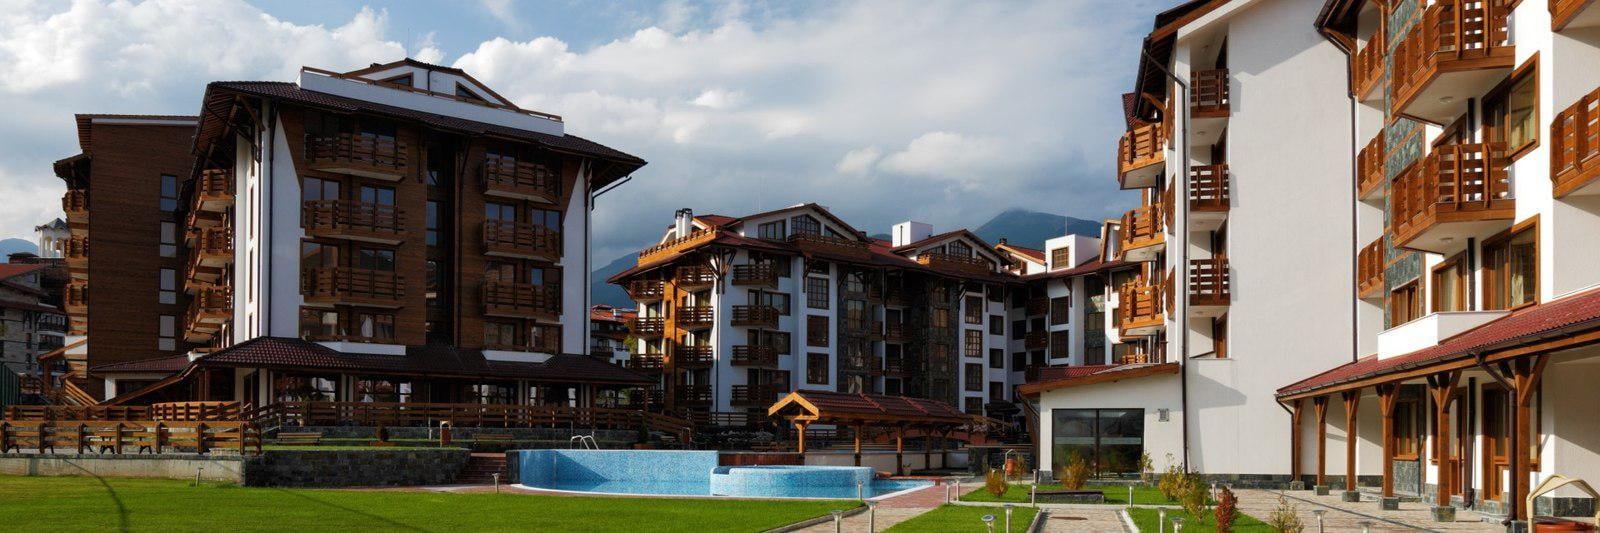 New apartments for sale in Bansko - 3 years payment plan